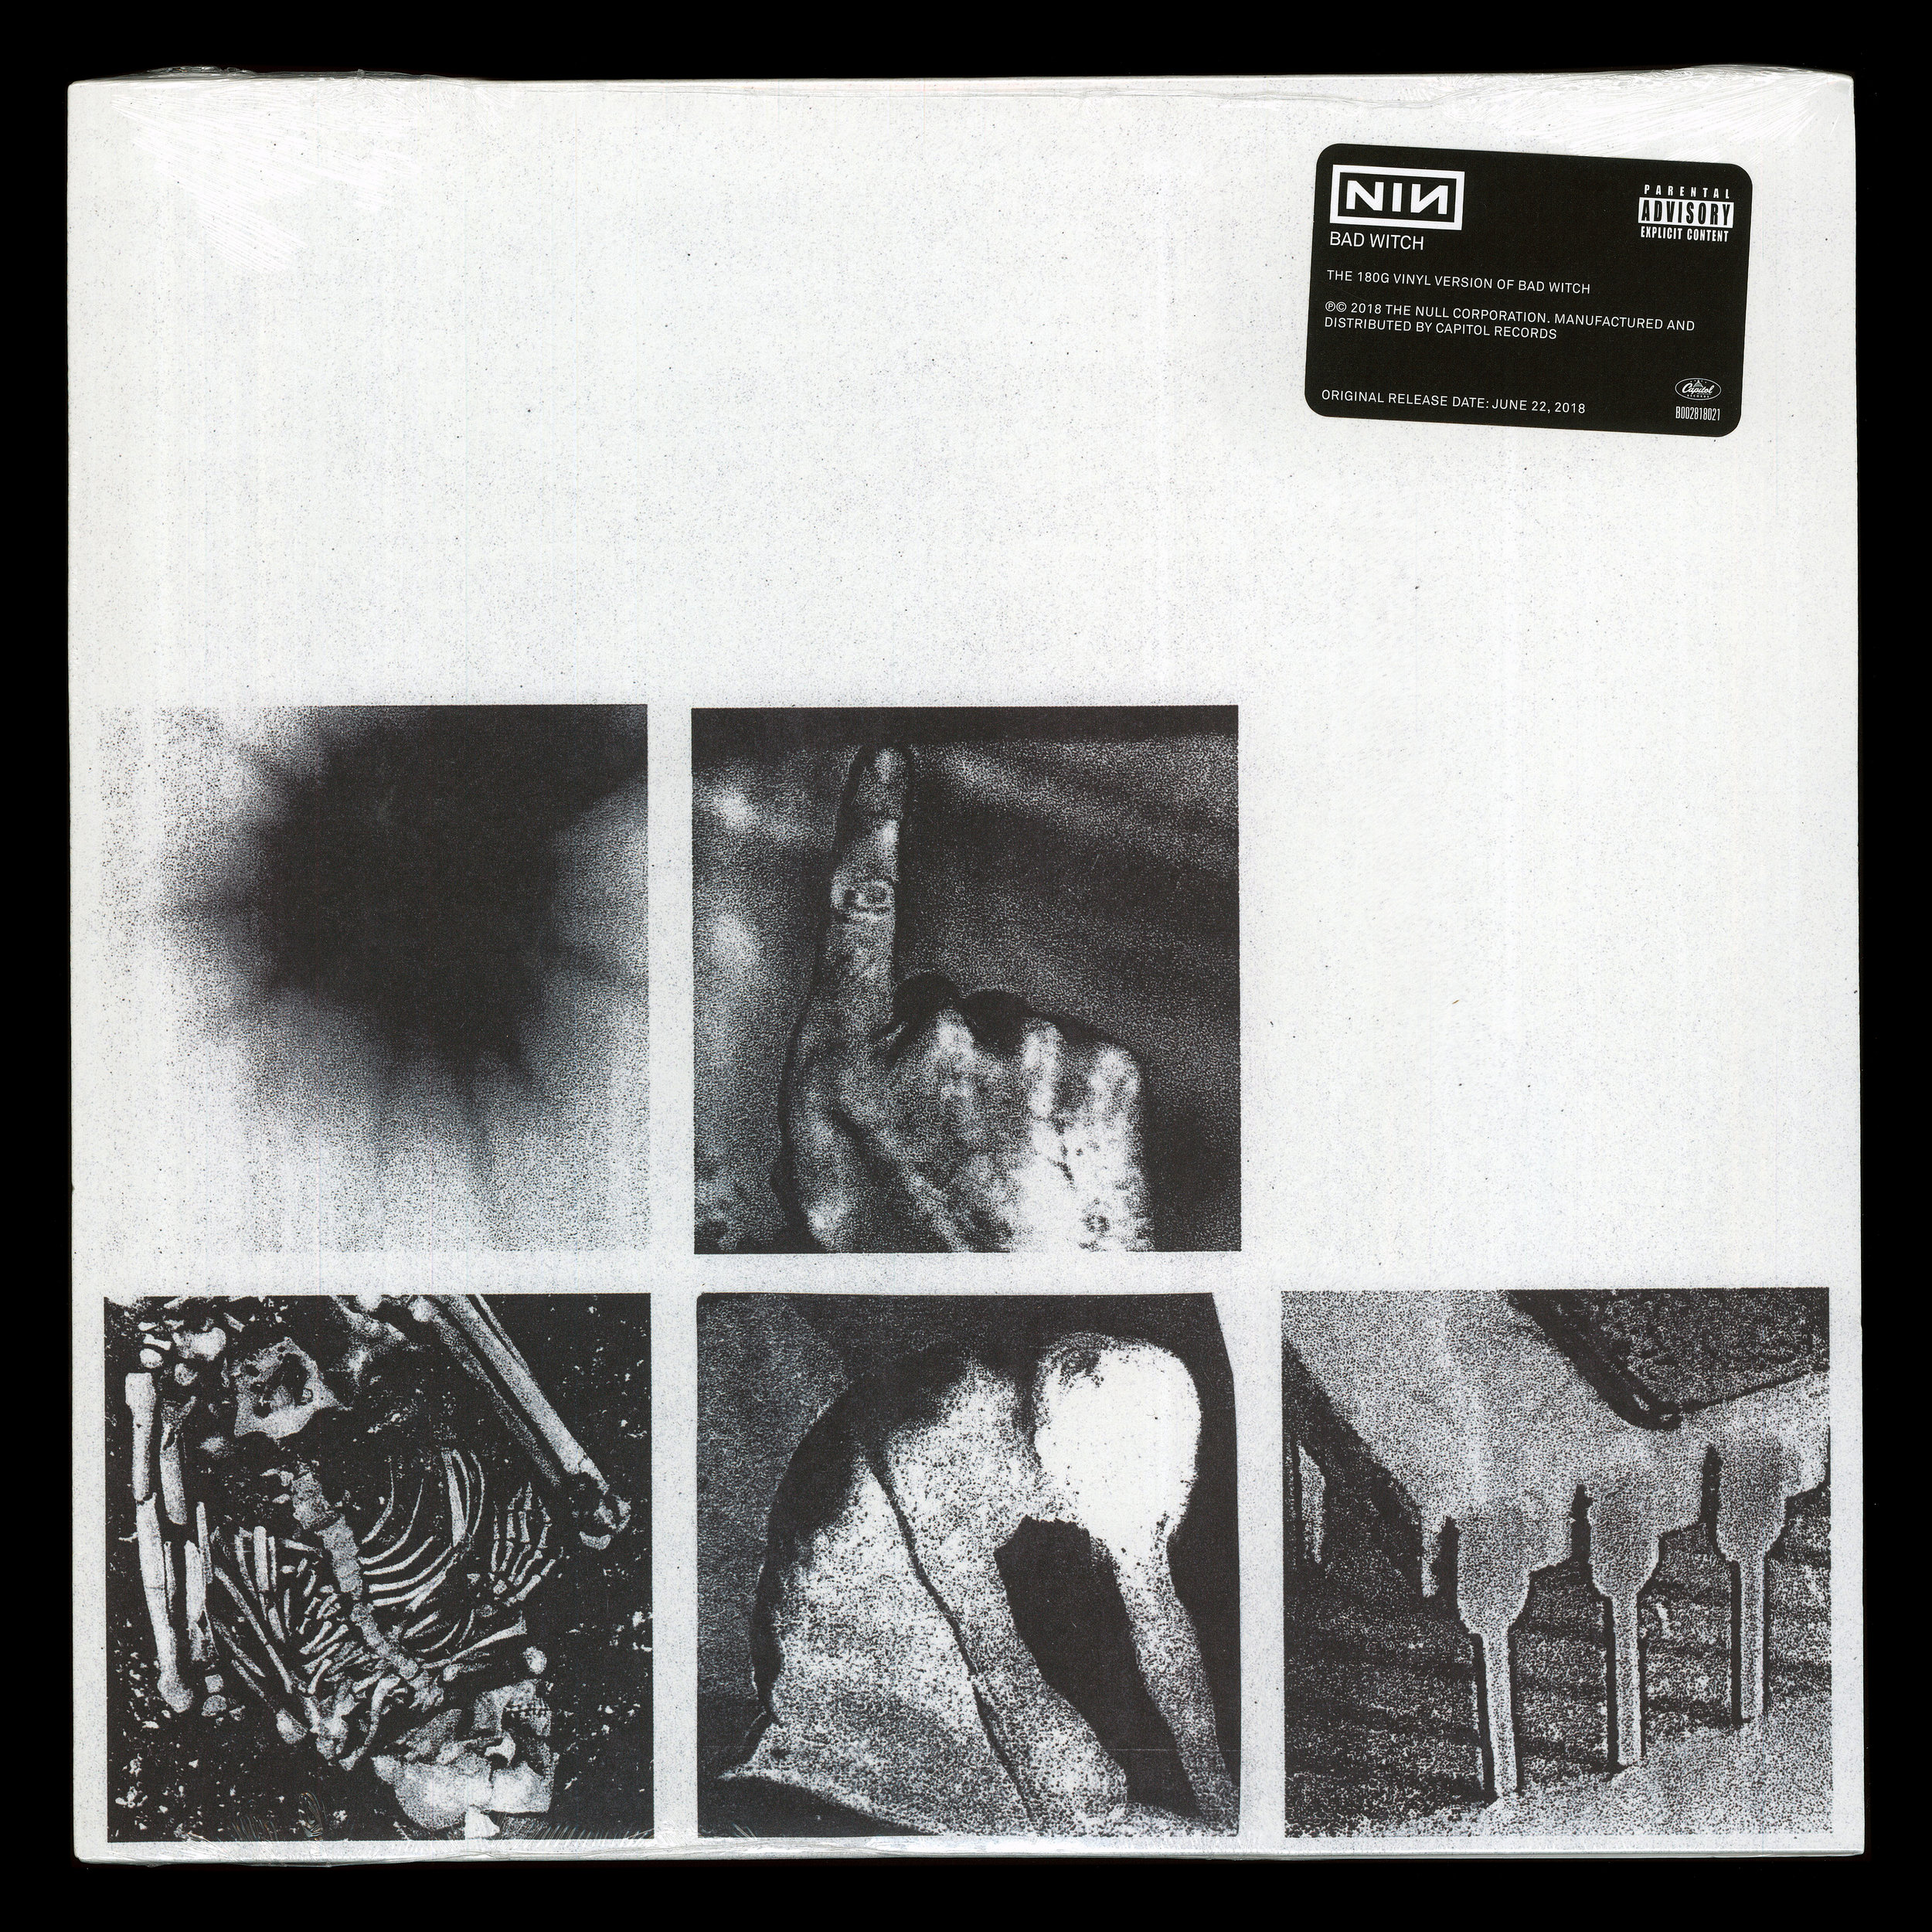 nine inch nails - bad witch - lp - cover web.jpg